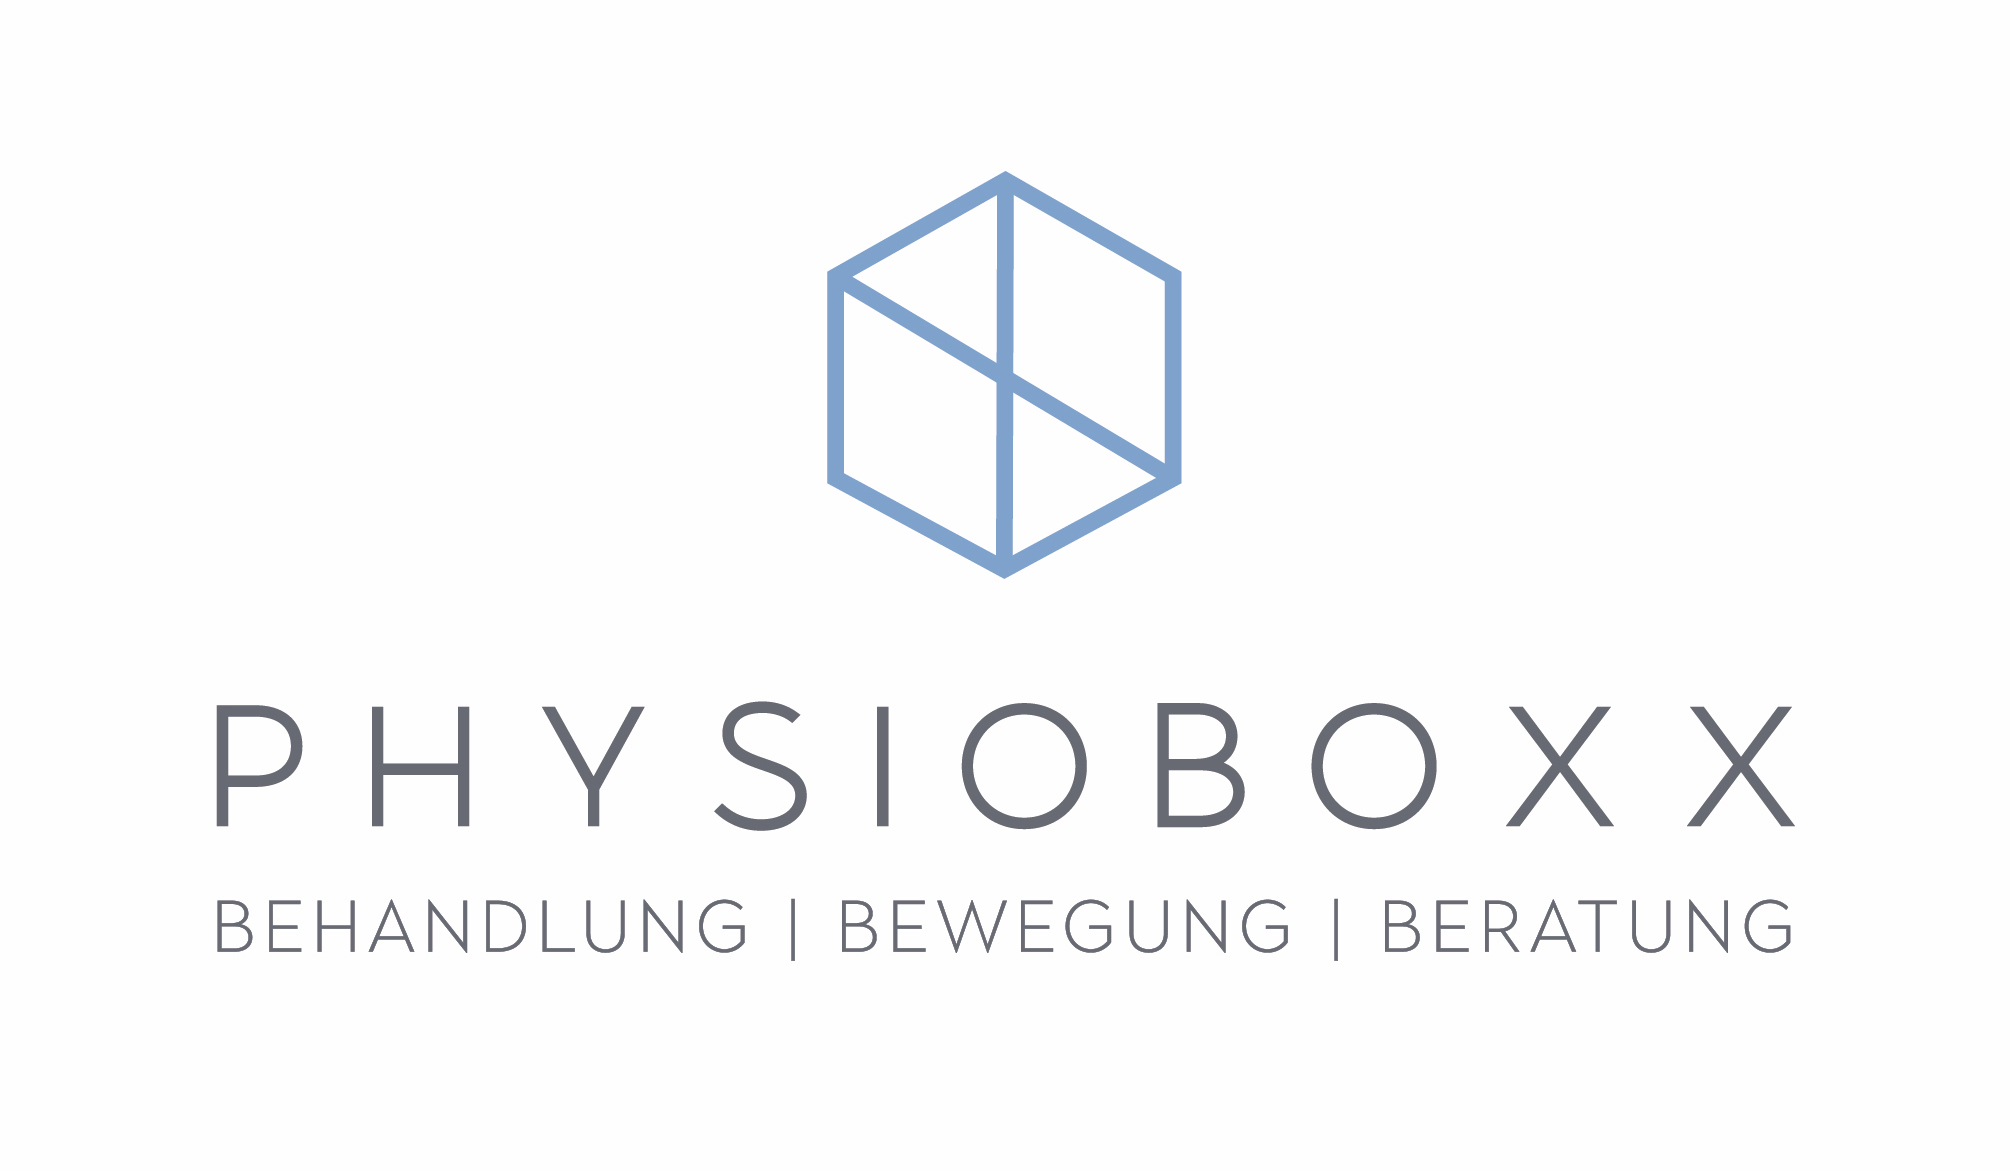 Physioboxx